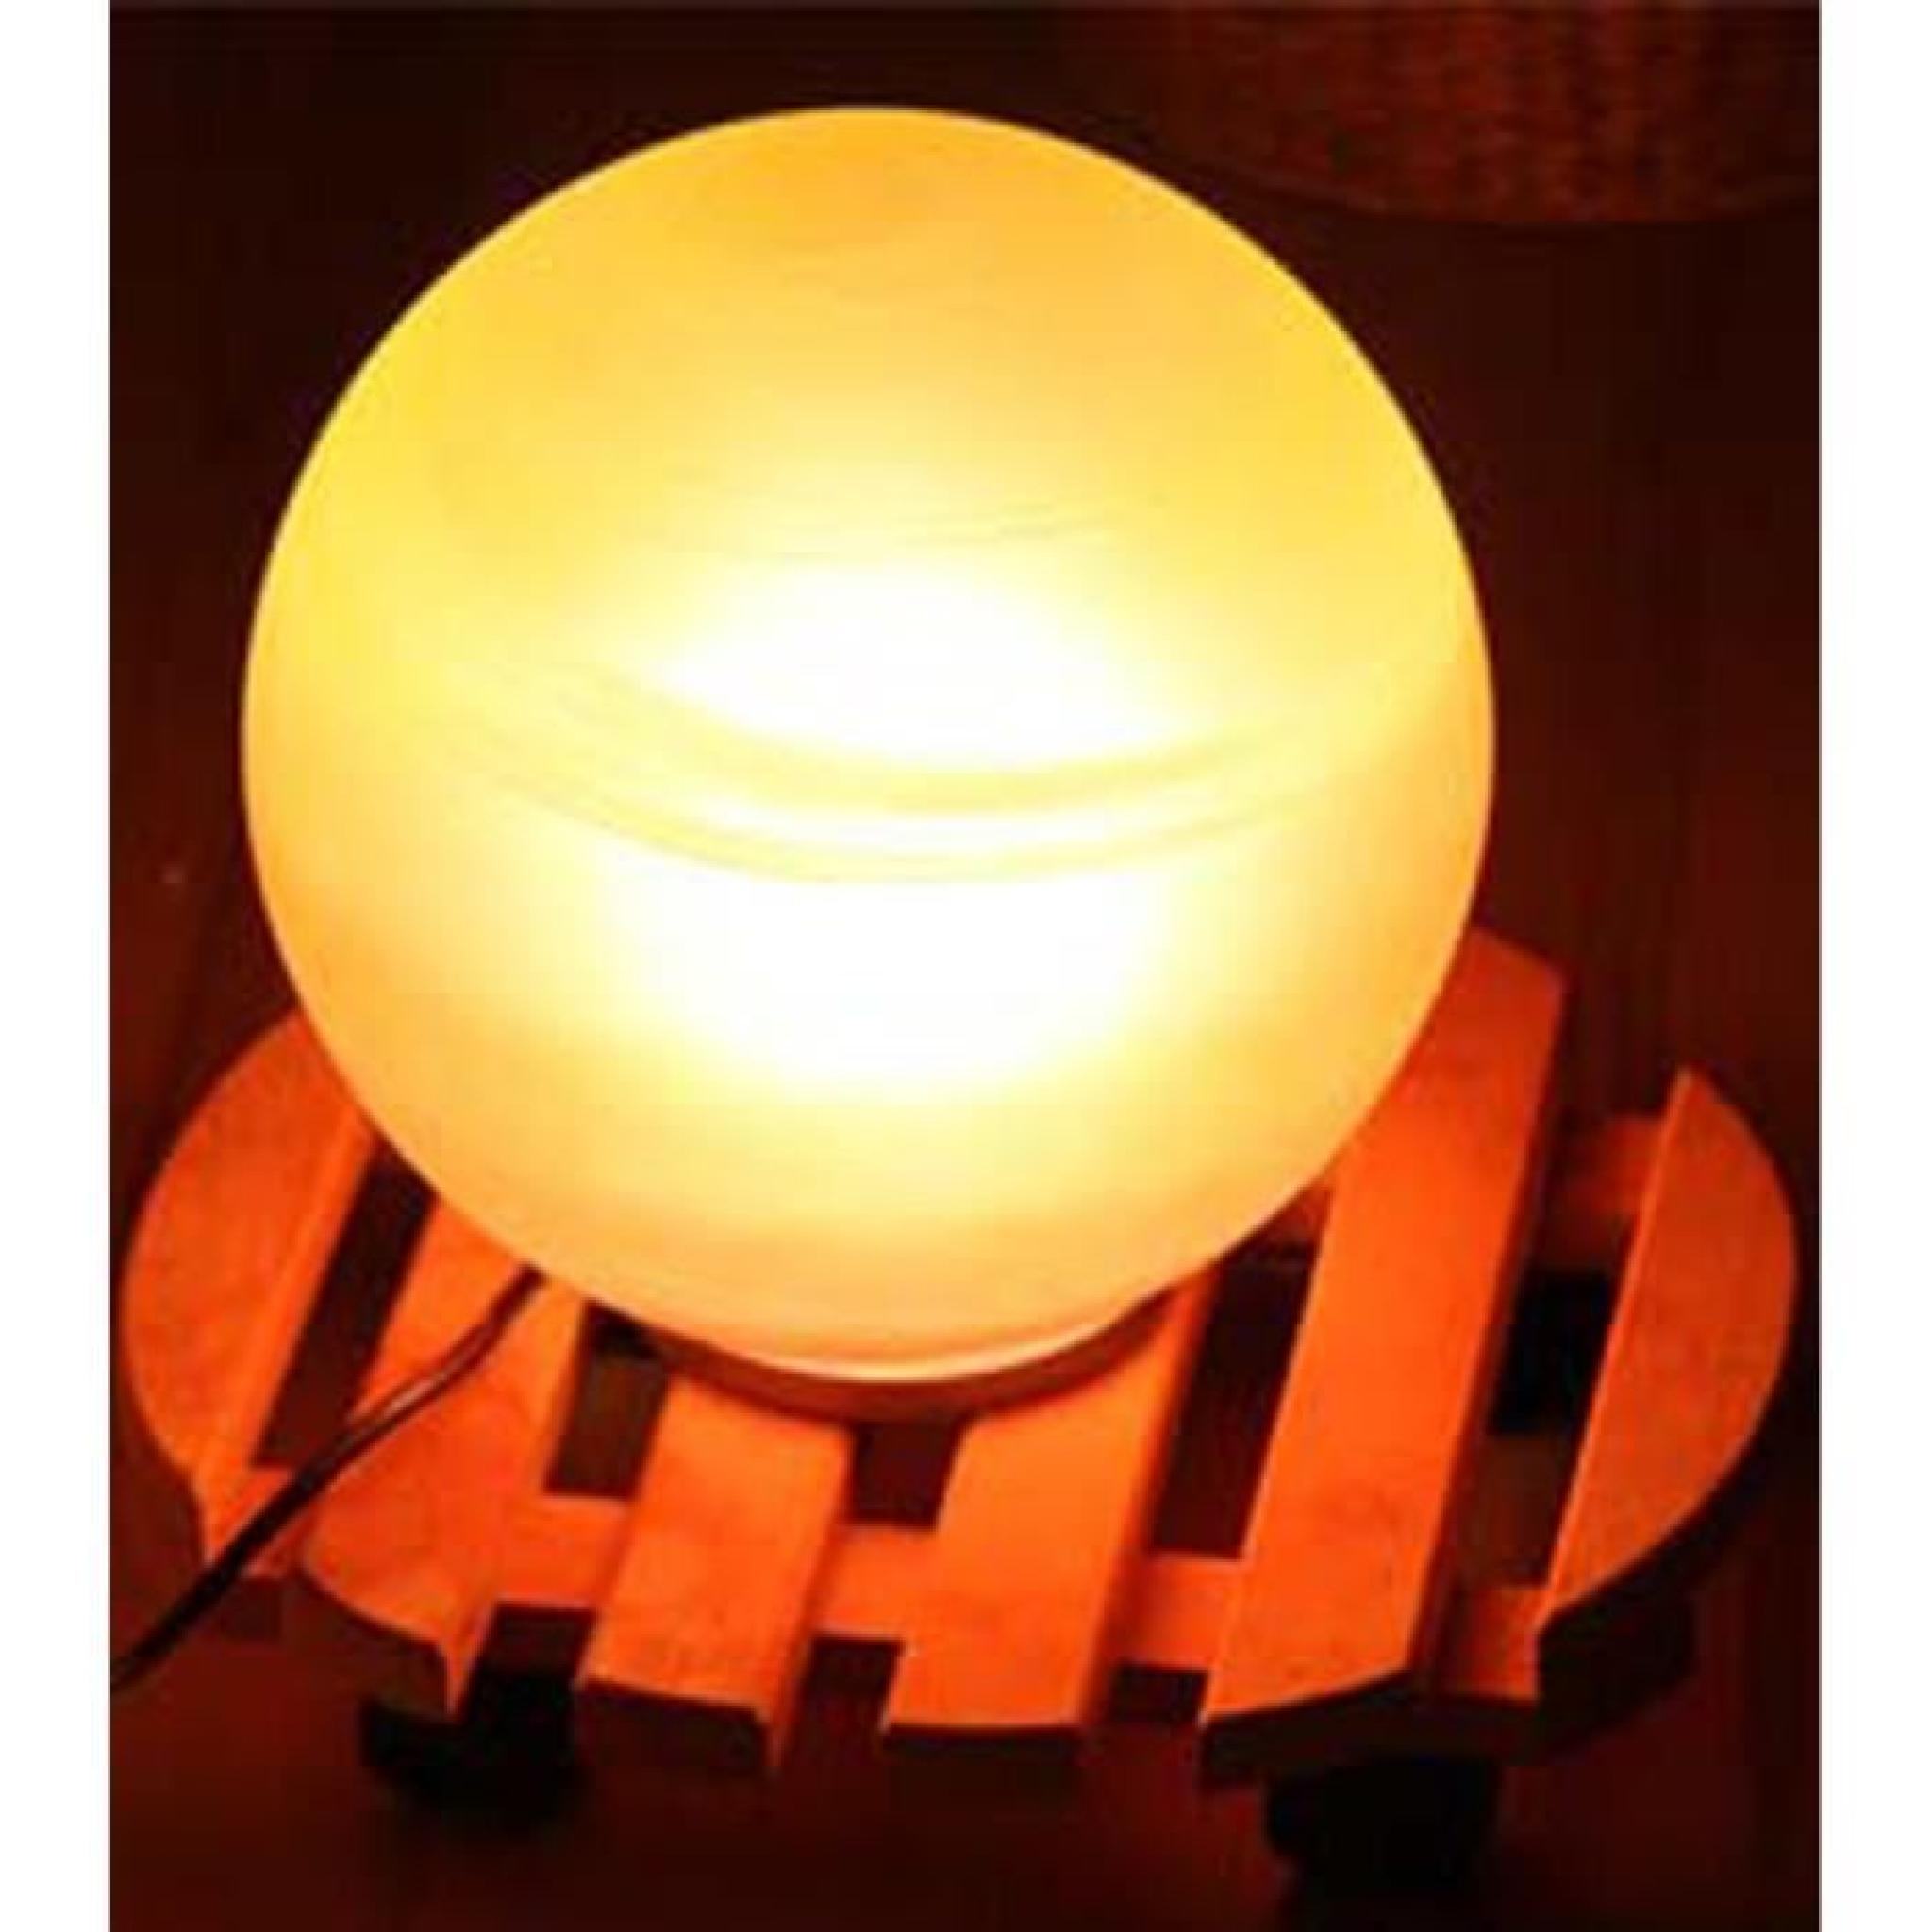 lampe de table billes orange en verre 20 cm achat vente lampe a poser pas cher couleur et. Black Bedroom Furniture Sets. Home Design Ideas